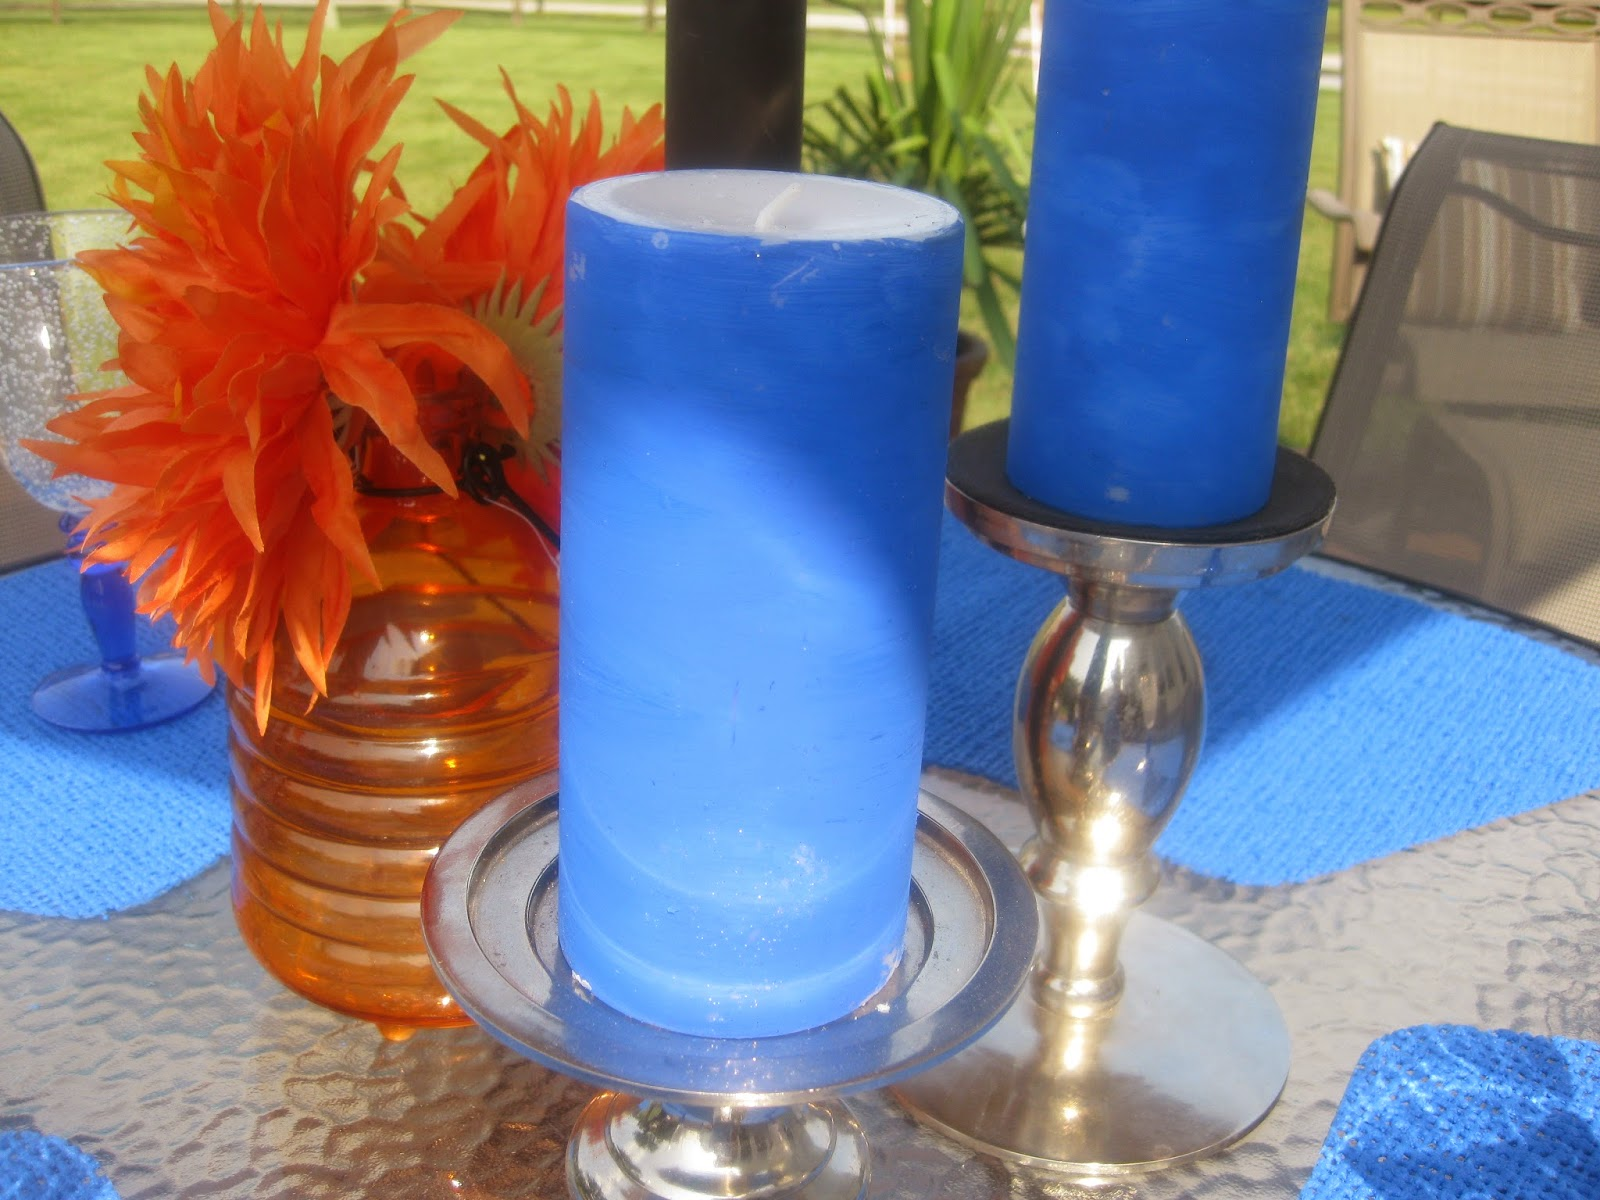 Patio table decor - painted candles